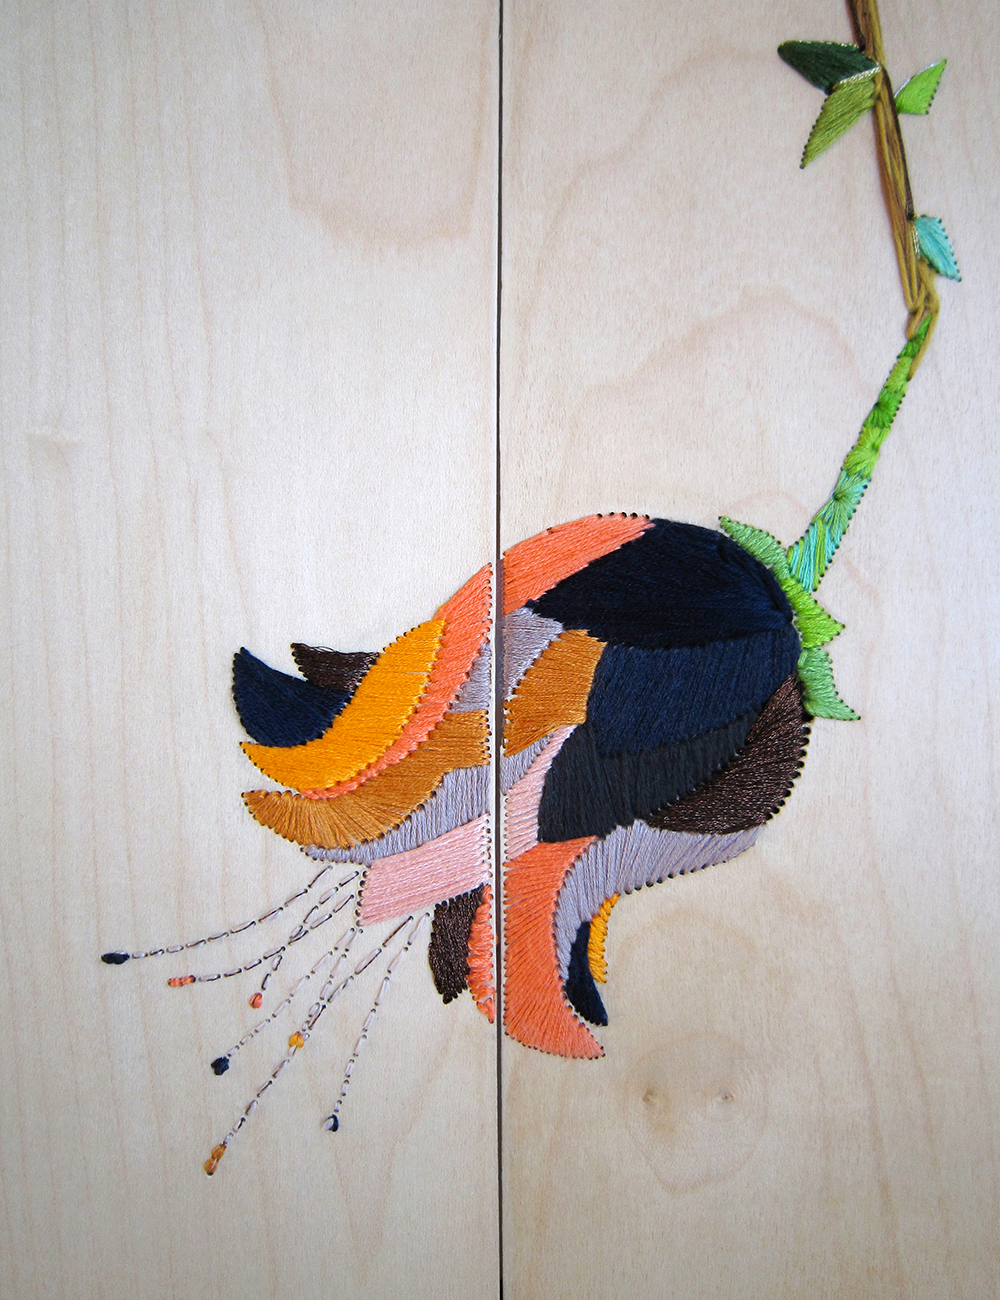 Célèbre Embroidery on wood : a new technique by Aurelie Wozniak AK97